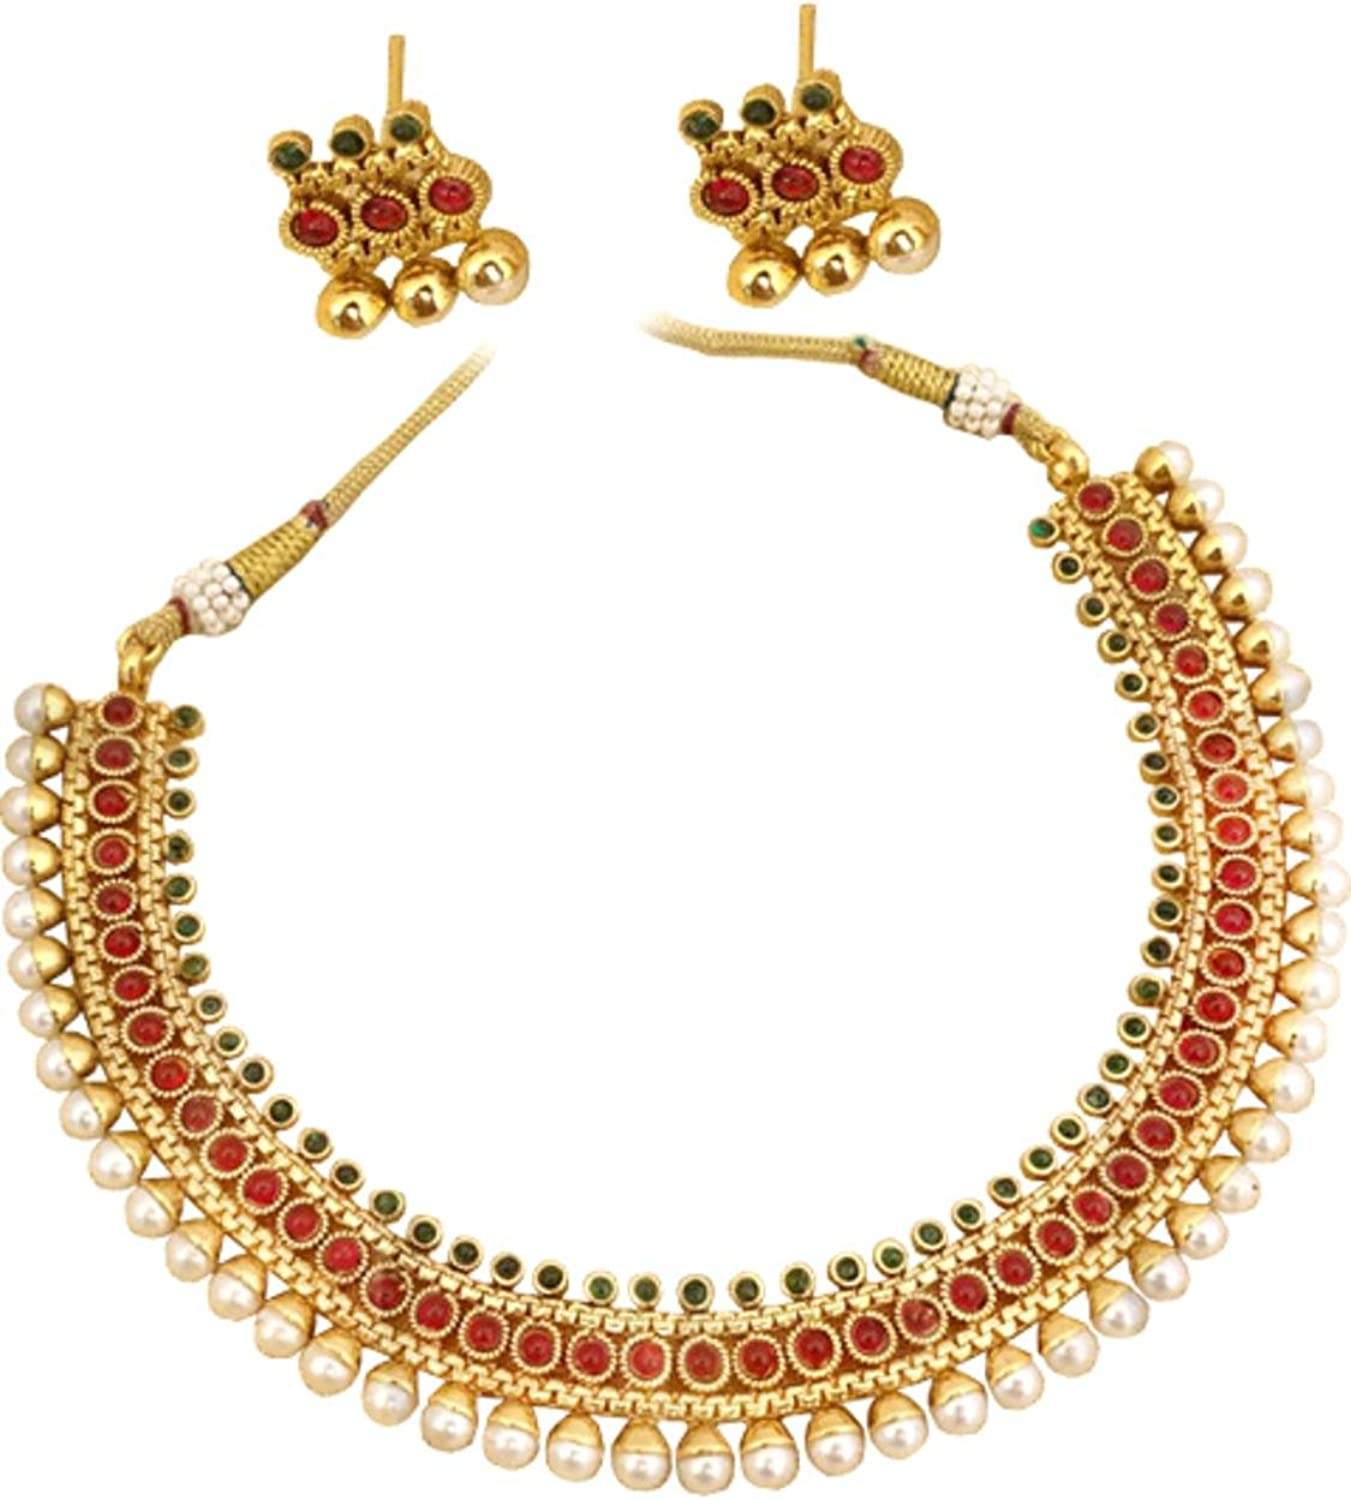 AZINGT201-GRG Authentic Indian Traditional Imitation Gold Tone Jewelry for Women